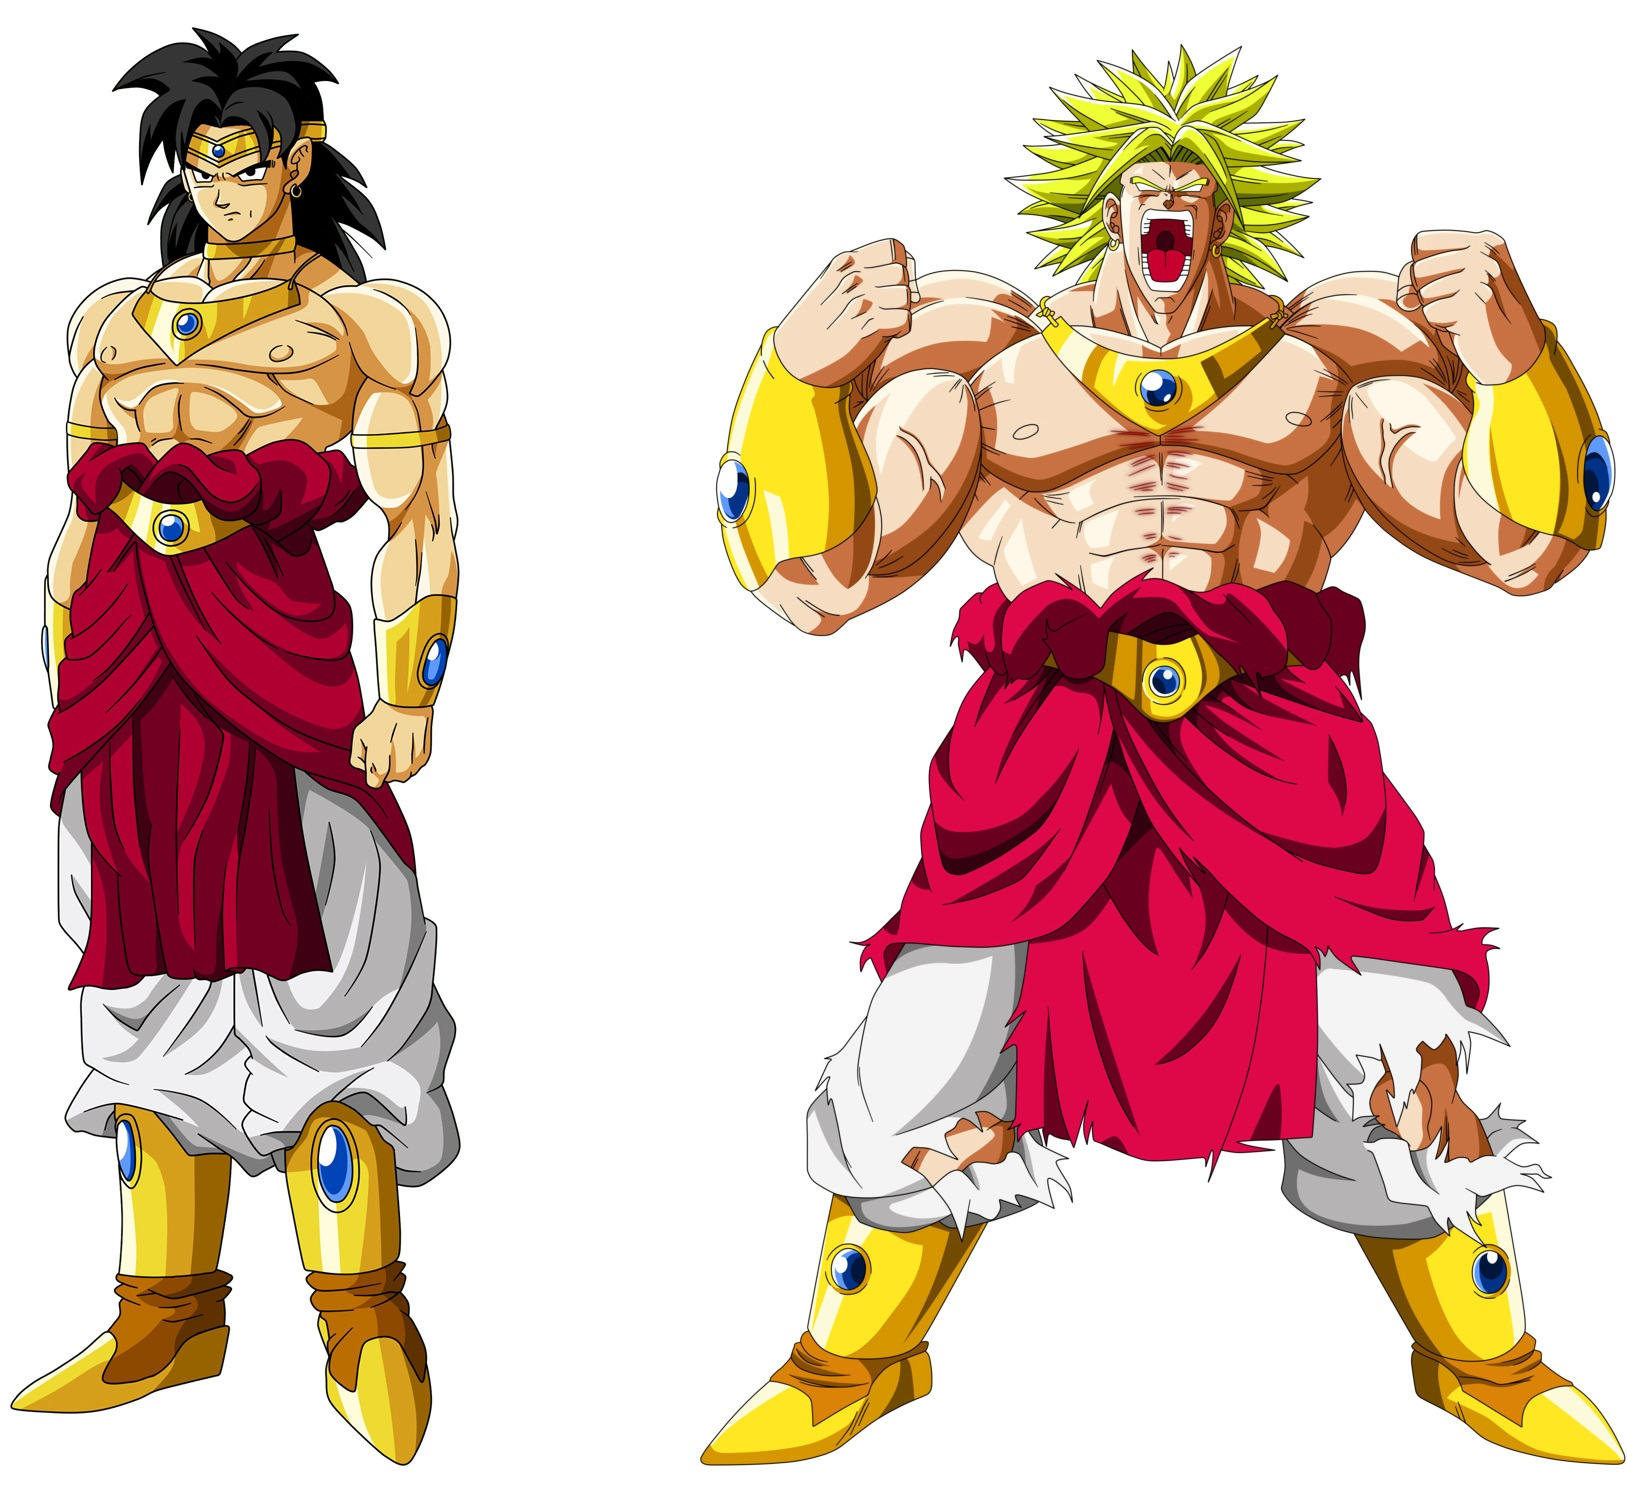 Broly le nouveau film dragon ball super s annonce grandiose - Sayen legendaire ...